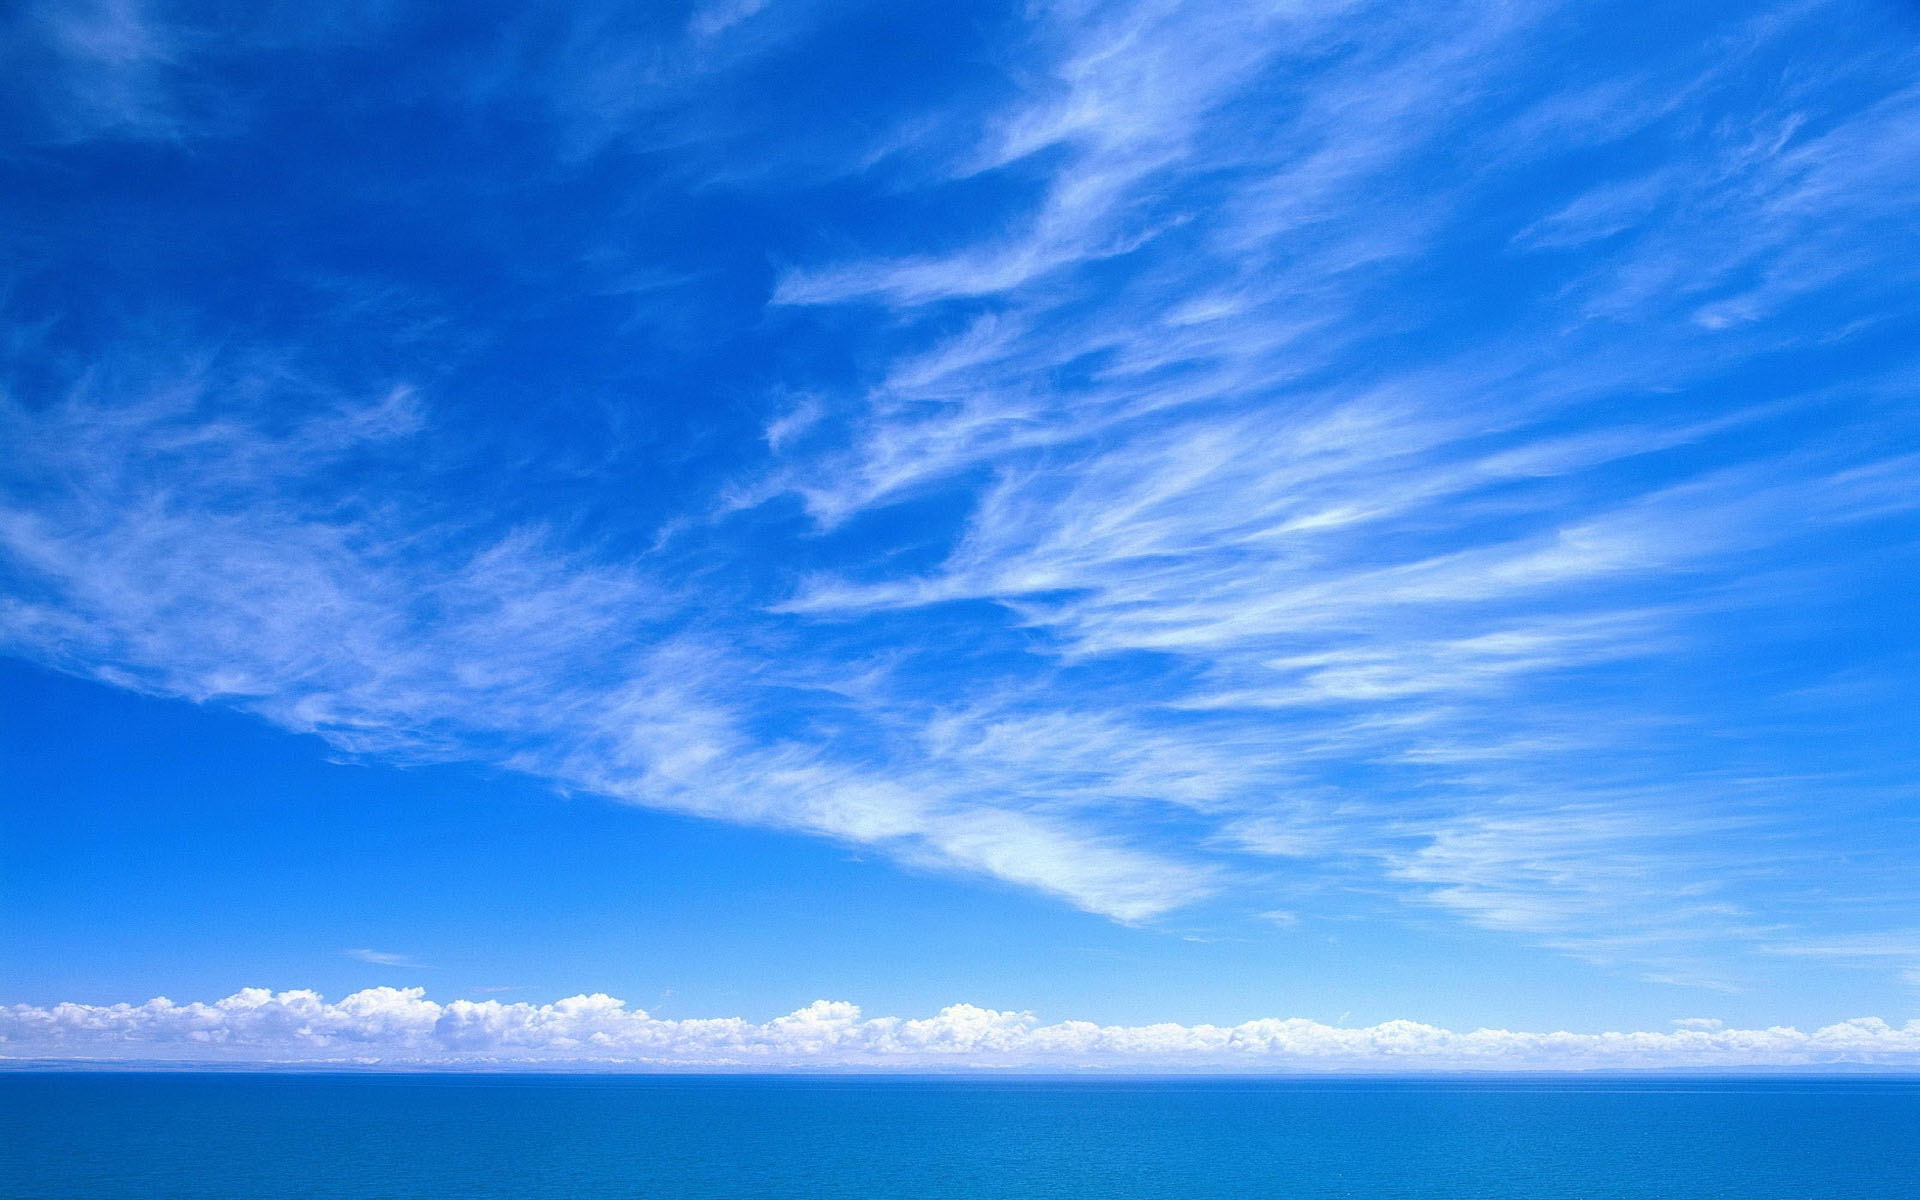 blue sky white clouds hd wallpaper hd latest wallpapers